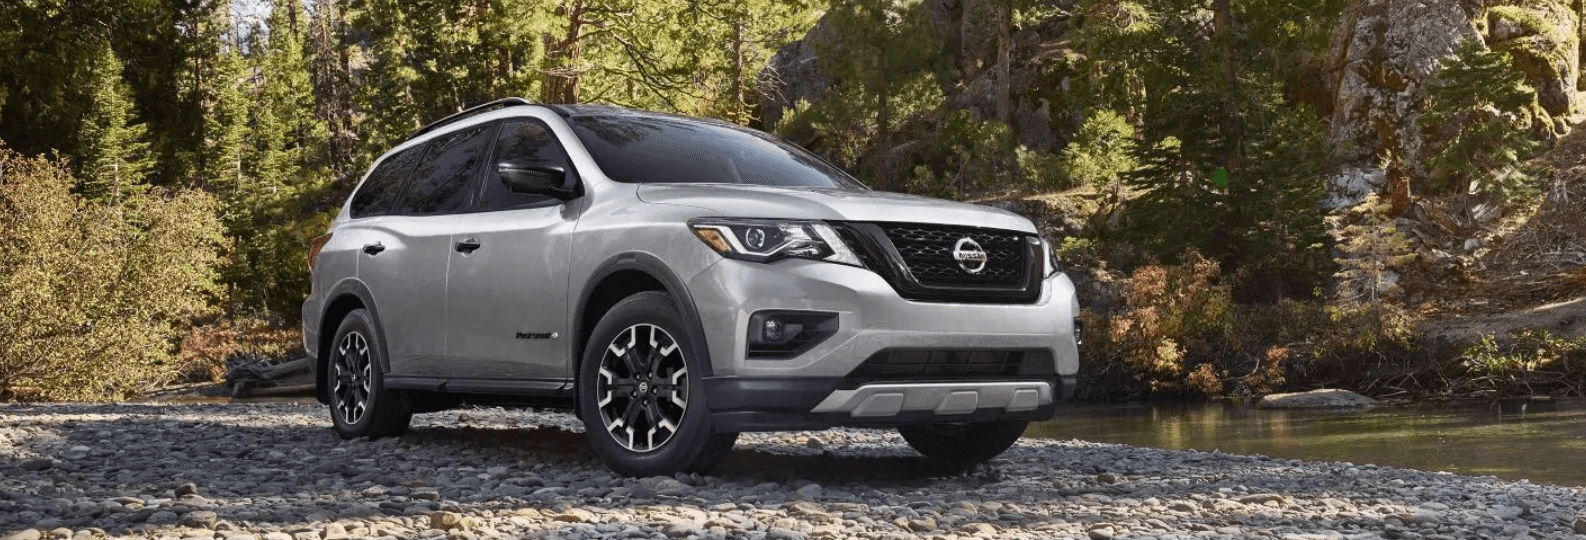 2019 Nissan Pathfinder vs Competition | M'Lady Nissan